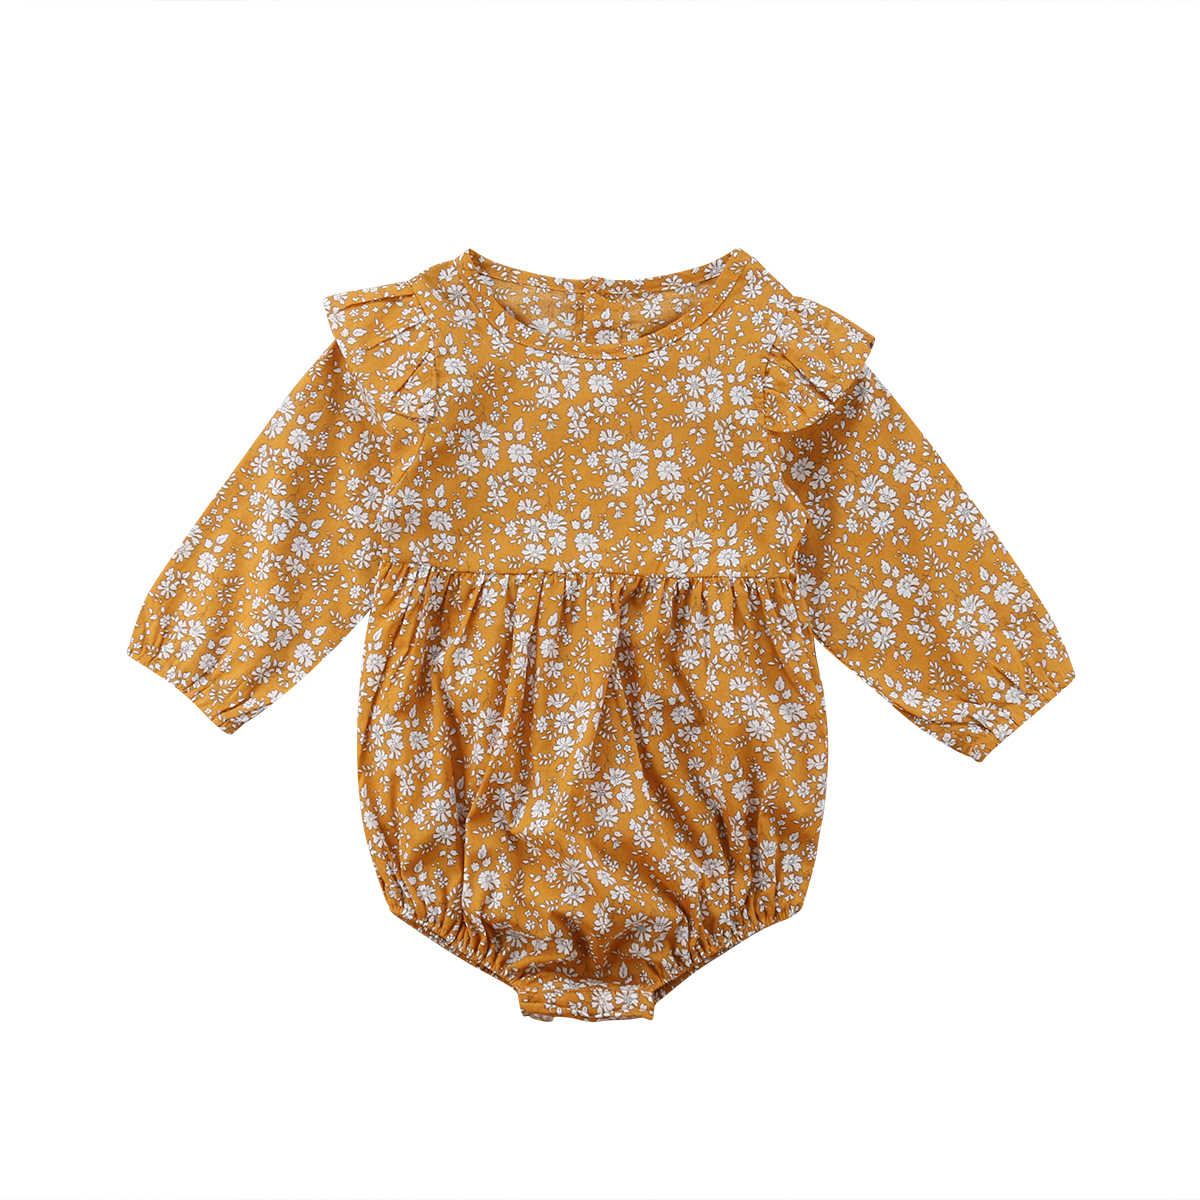 6a582a176f88 Detail Feedback Questions about Cute Infant Baby Girls Hot Sale ...